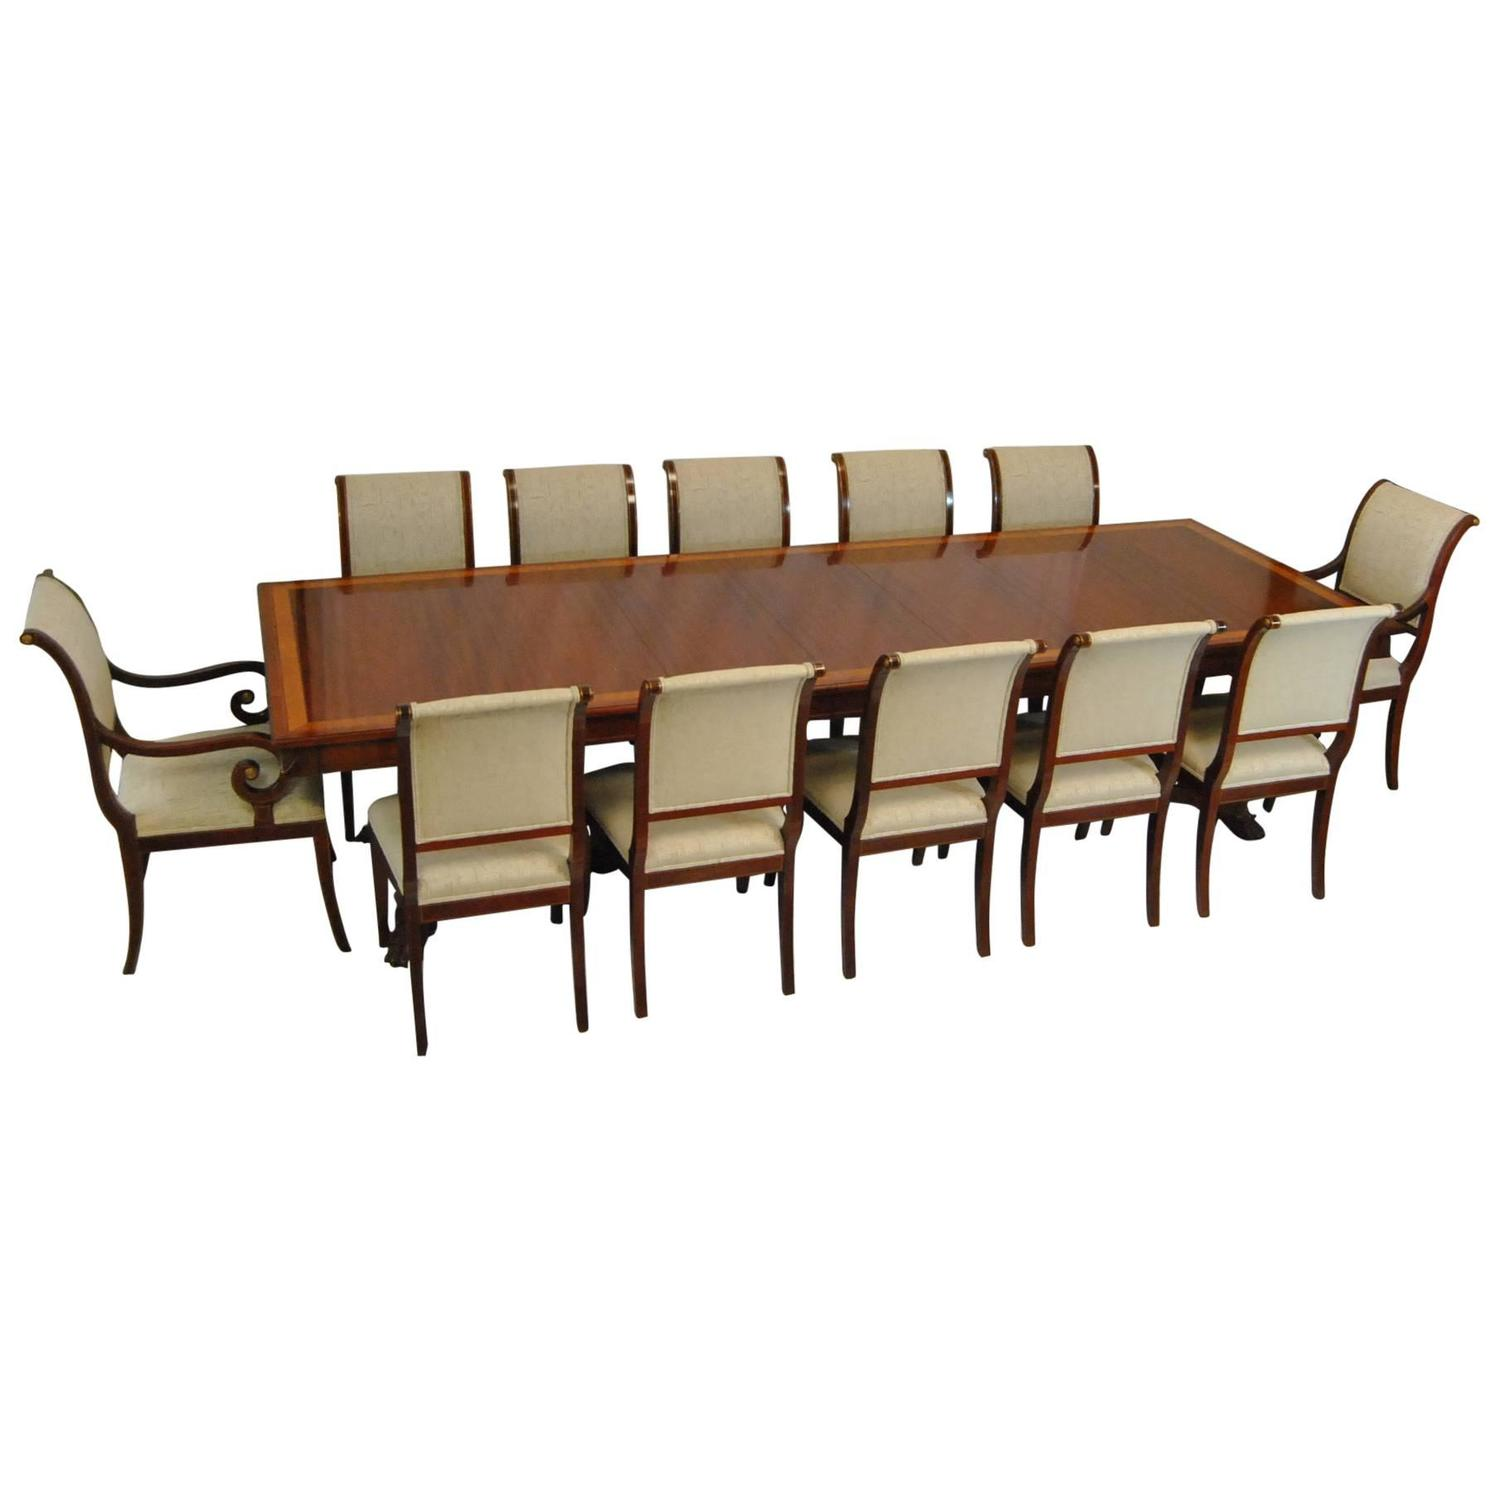 Dining Room Table Seats 12: Mahogany Dining Table And 12 Chairs By Kindel, NeoClassic